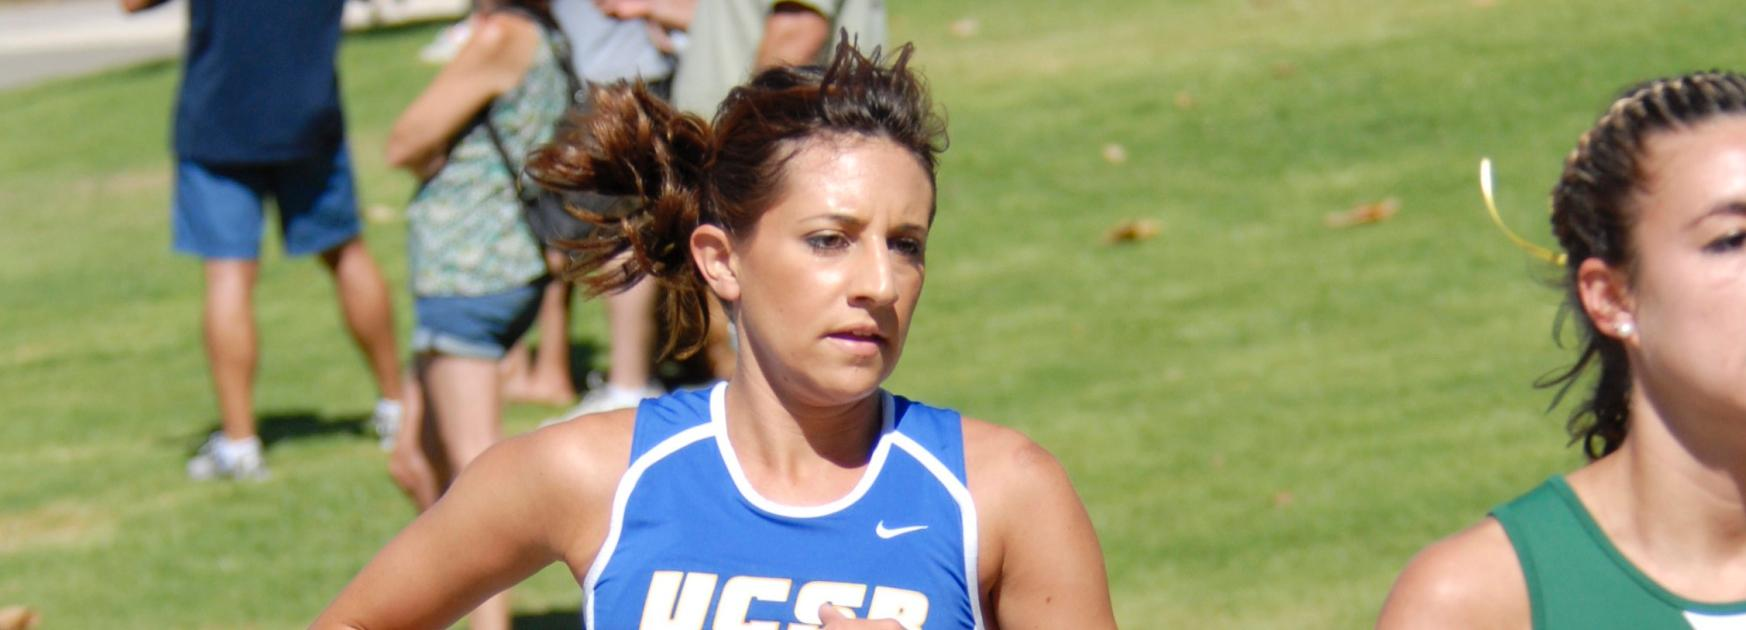 Amanda Moreno Named UCSBgauchos.com Athlete of the Week